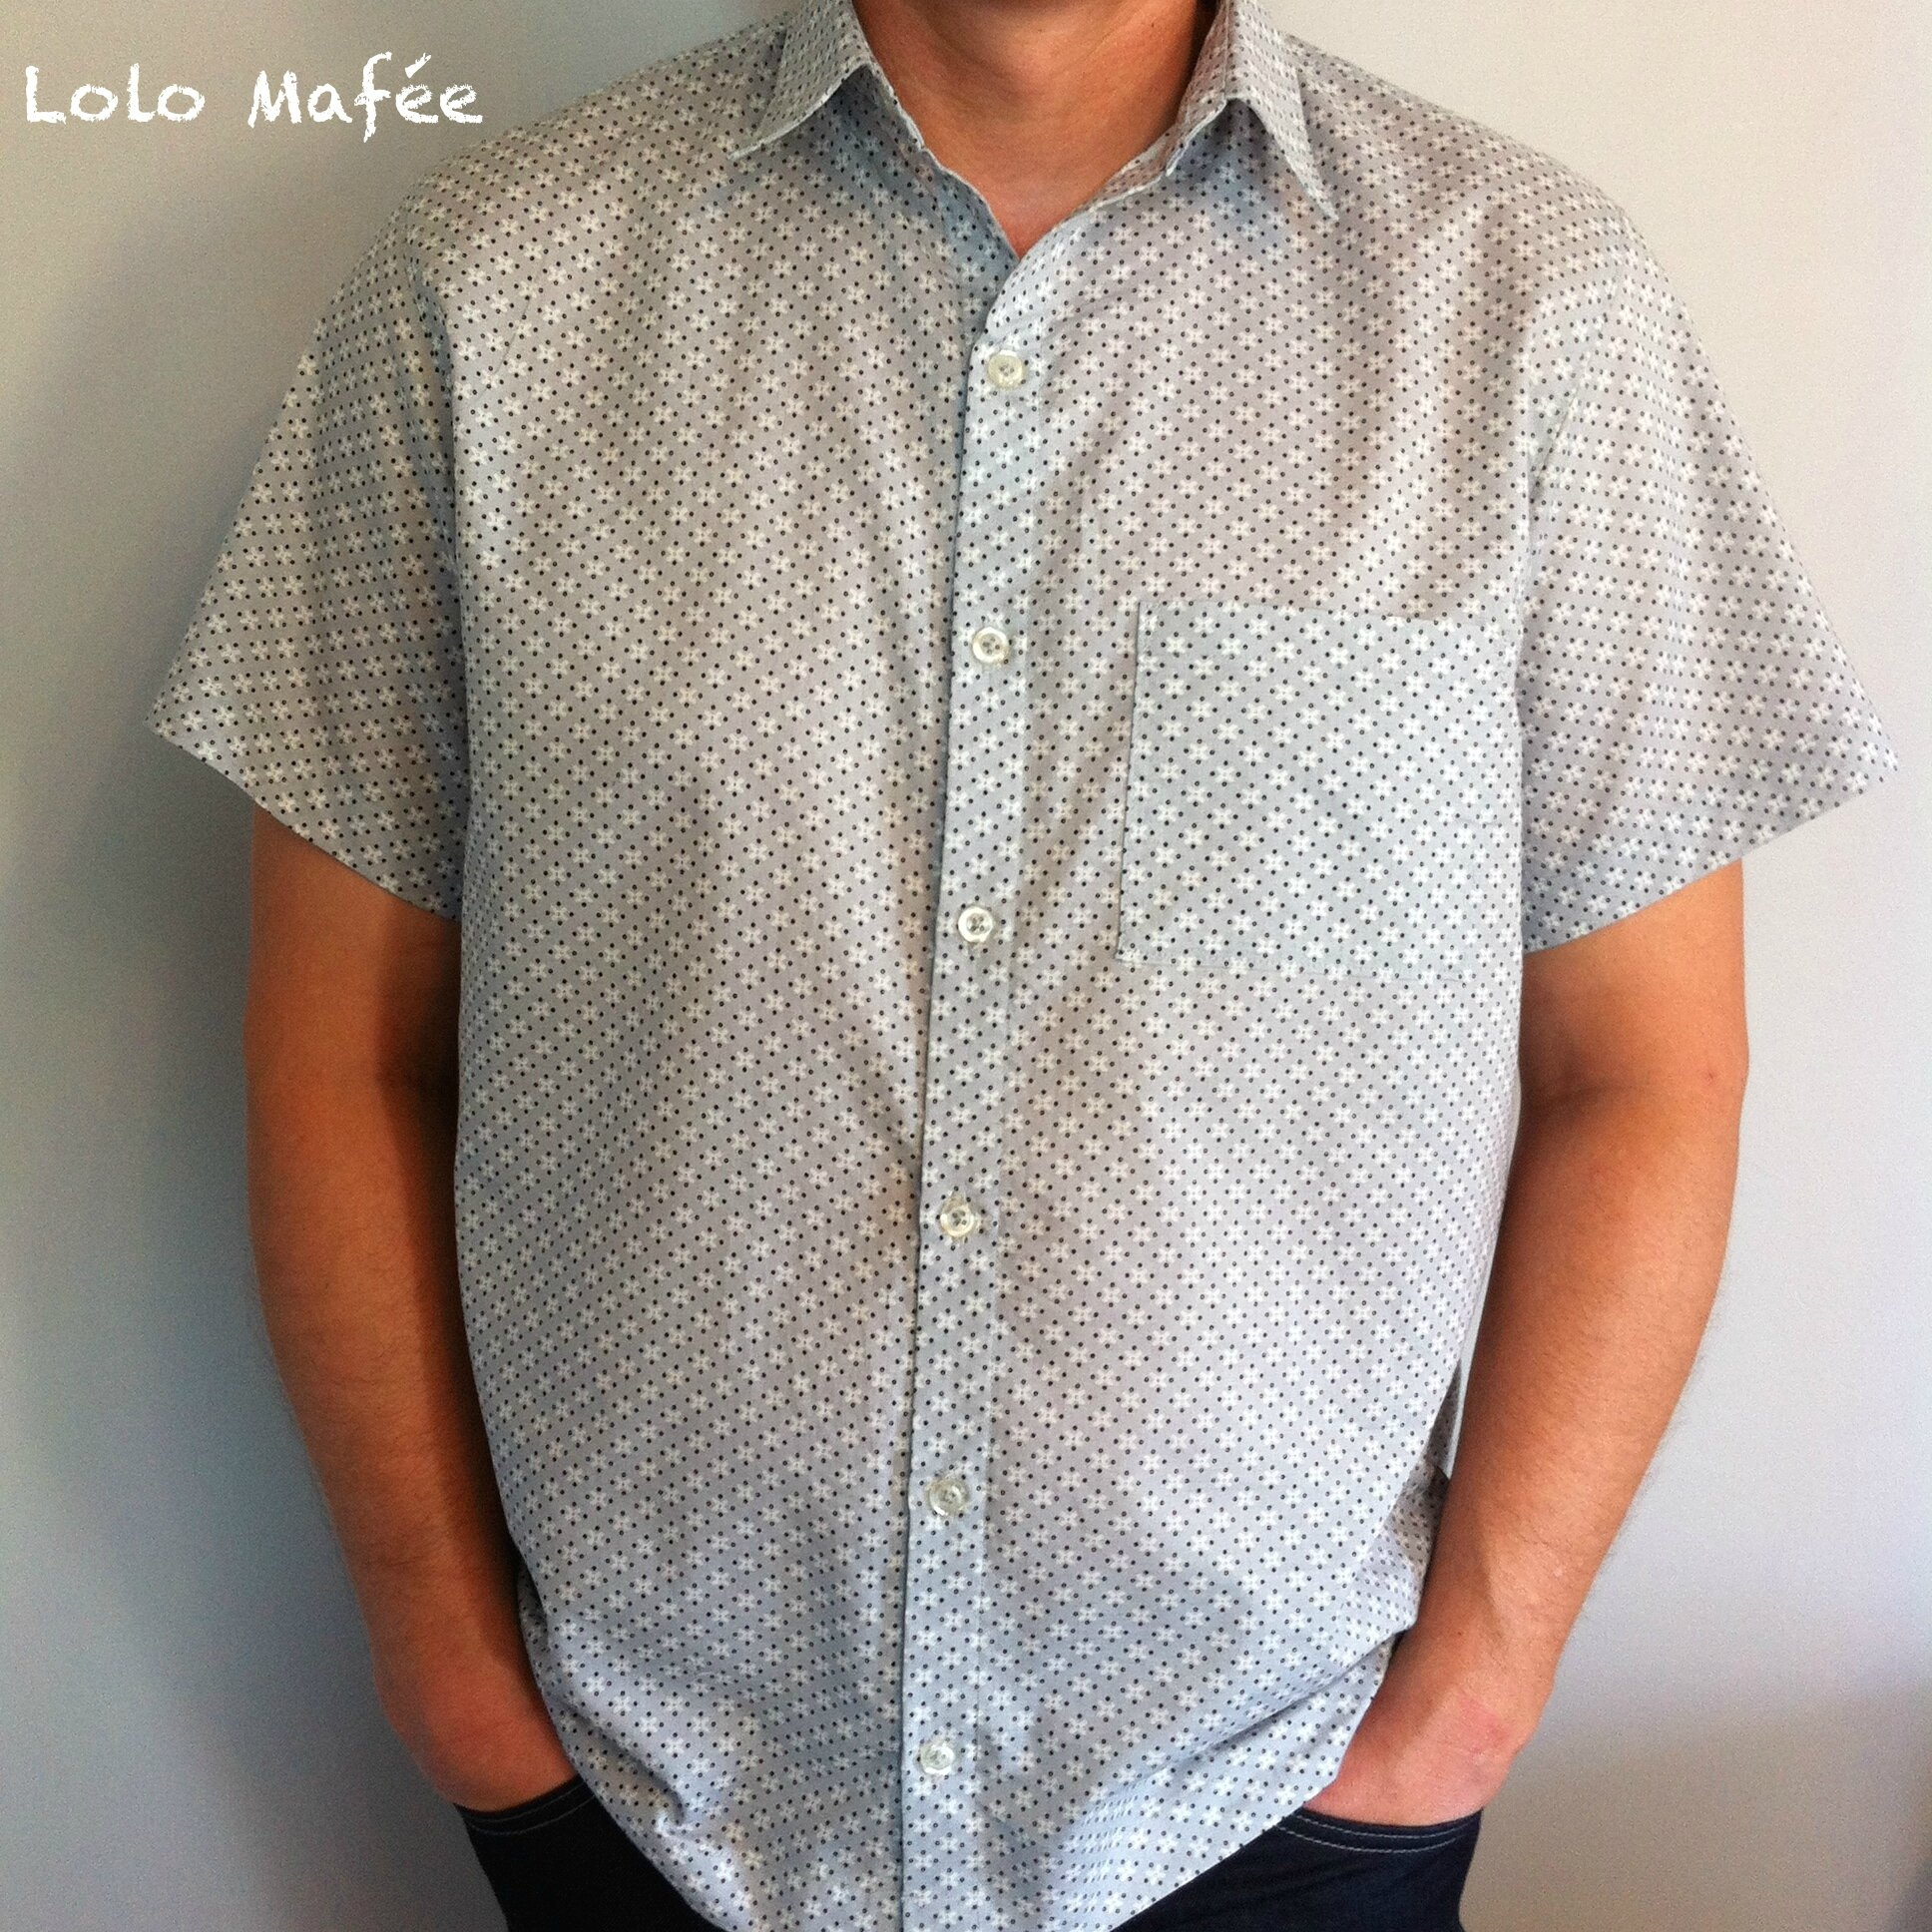 Une Chemise Mafée Lolo Pour Homme Mon AwHYa